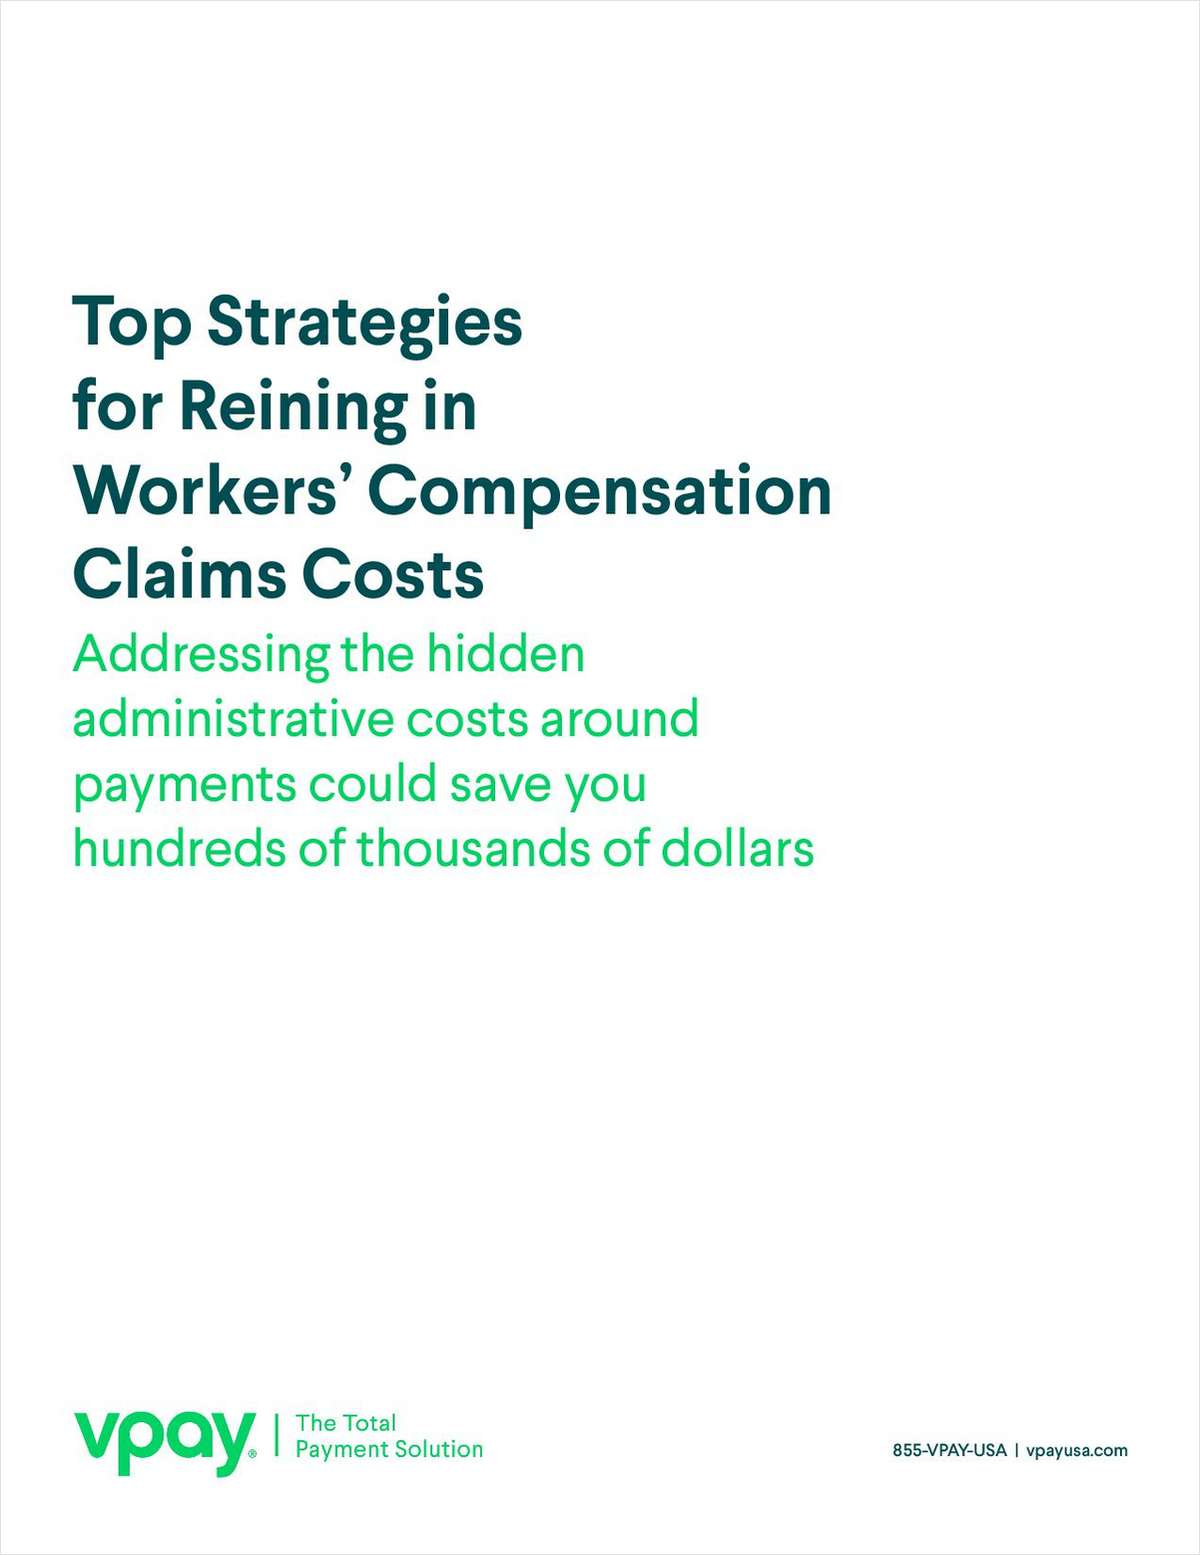 Top Strategies for Reining in Workers' Compensation Claims Costs